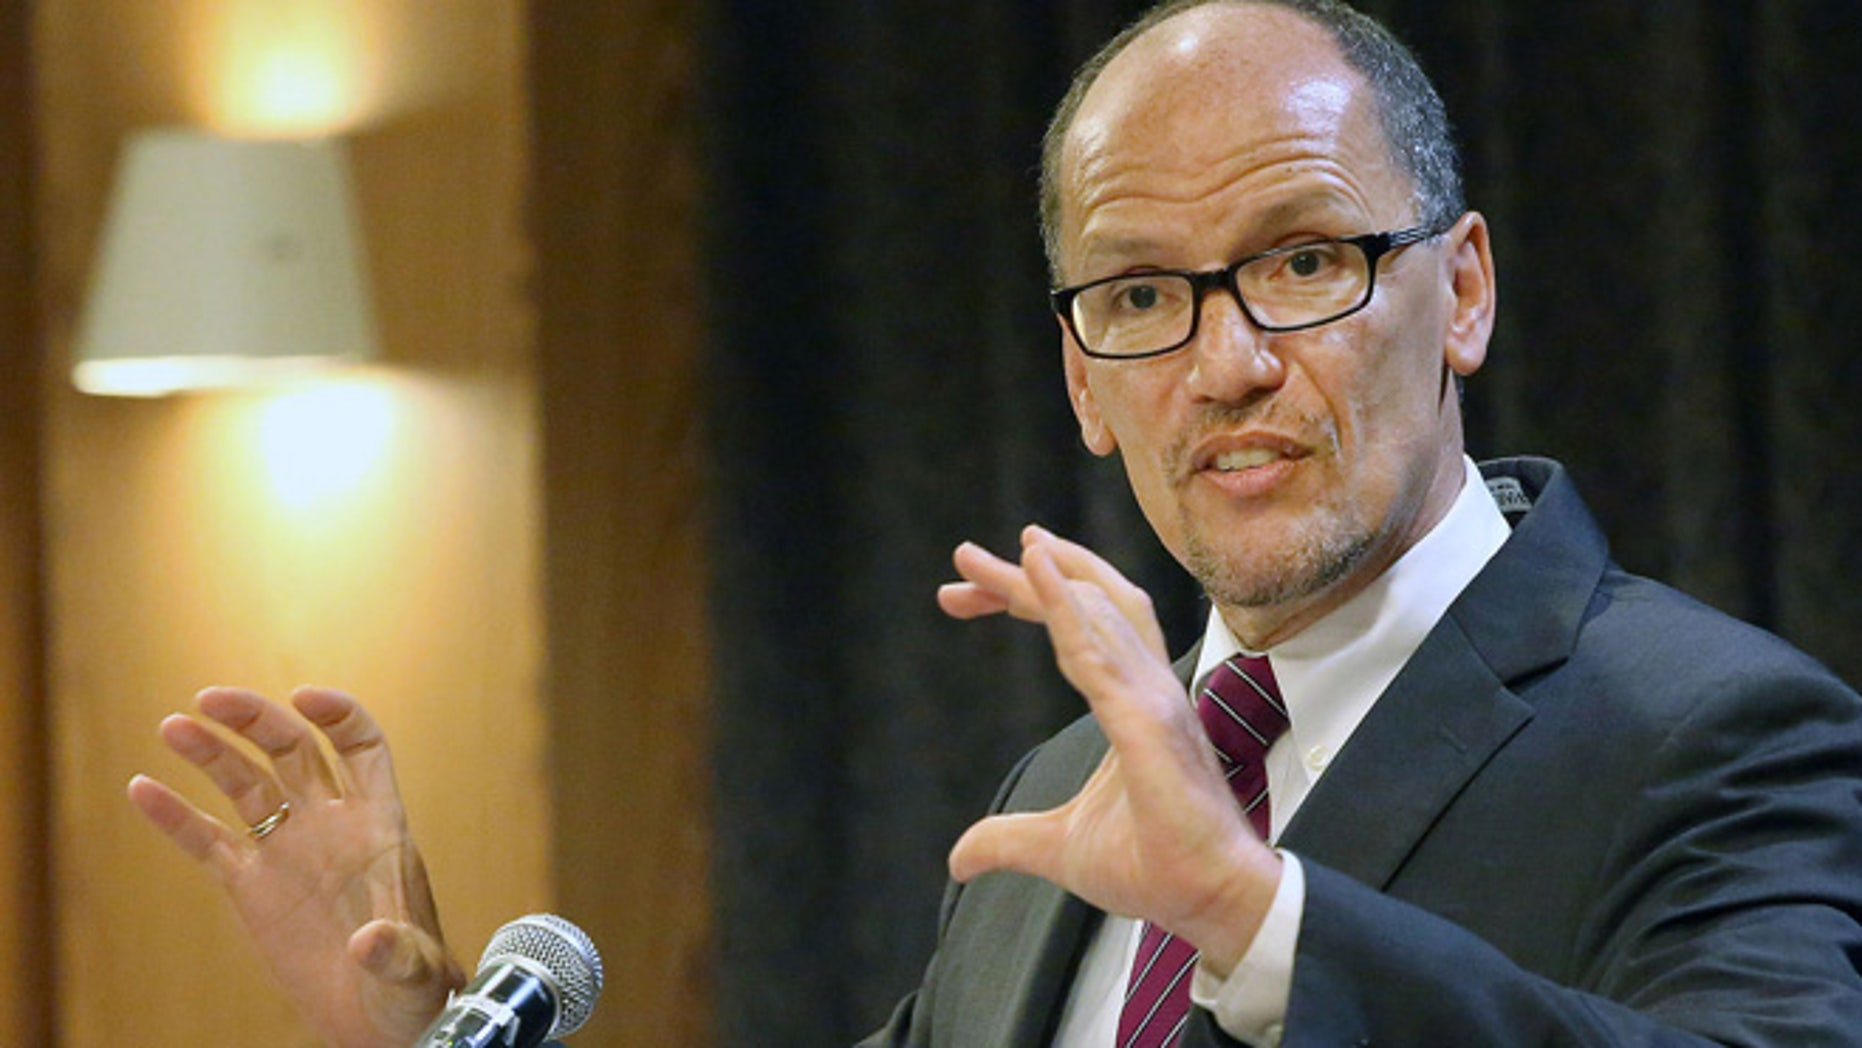 Aug. 18, 2014: Secretary of the U.S. Department of Labor Thomas Perez speaks to business and community leaders at a Los Angeles Area Chamber of Commerce event. (AP)